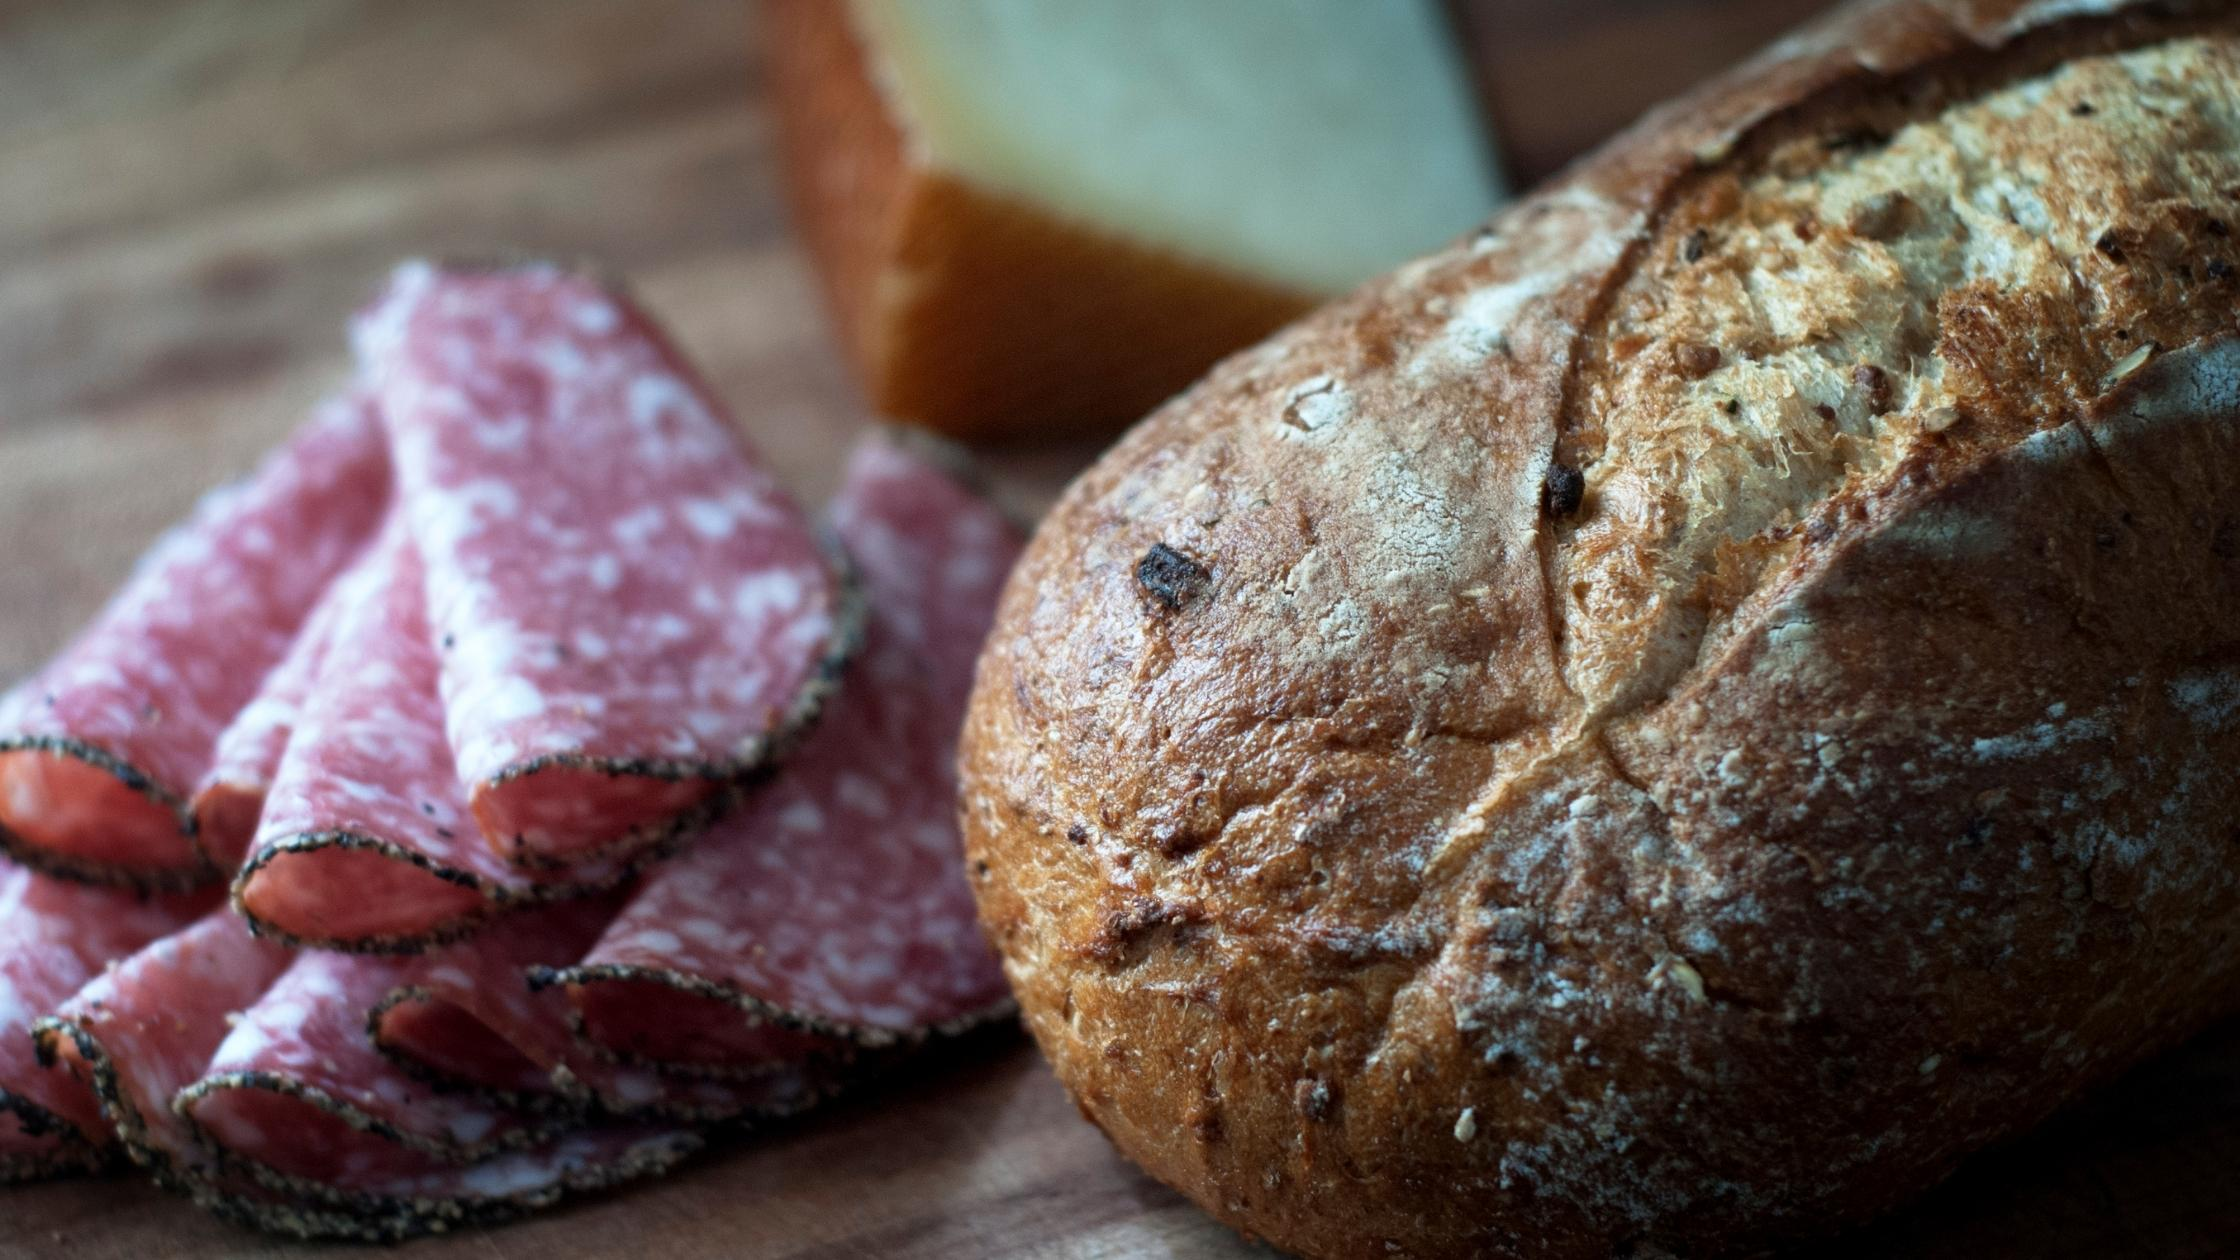 rustic bread, sliced meat and a block of cheese